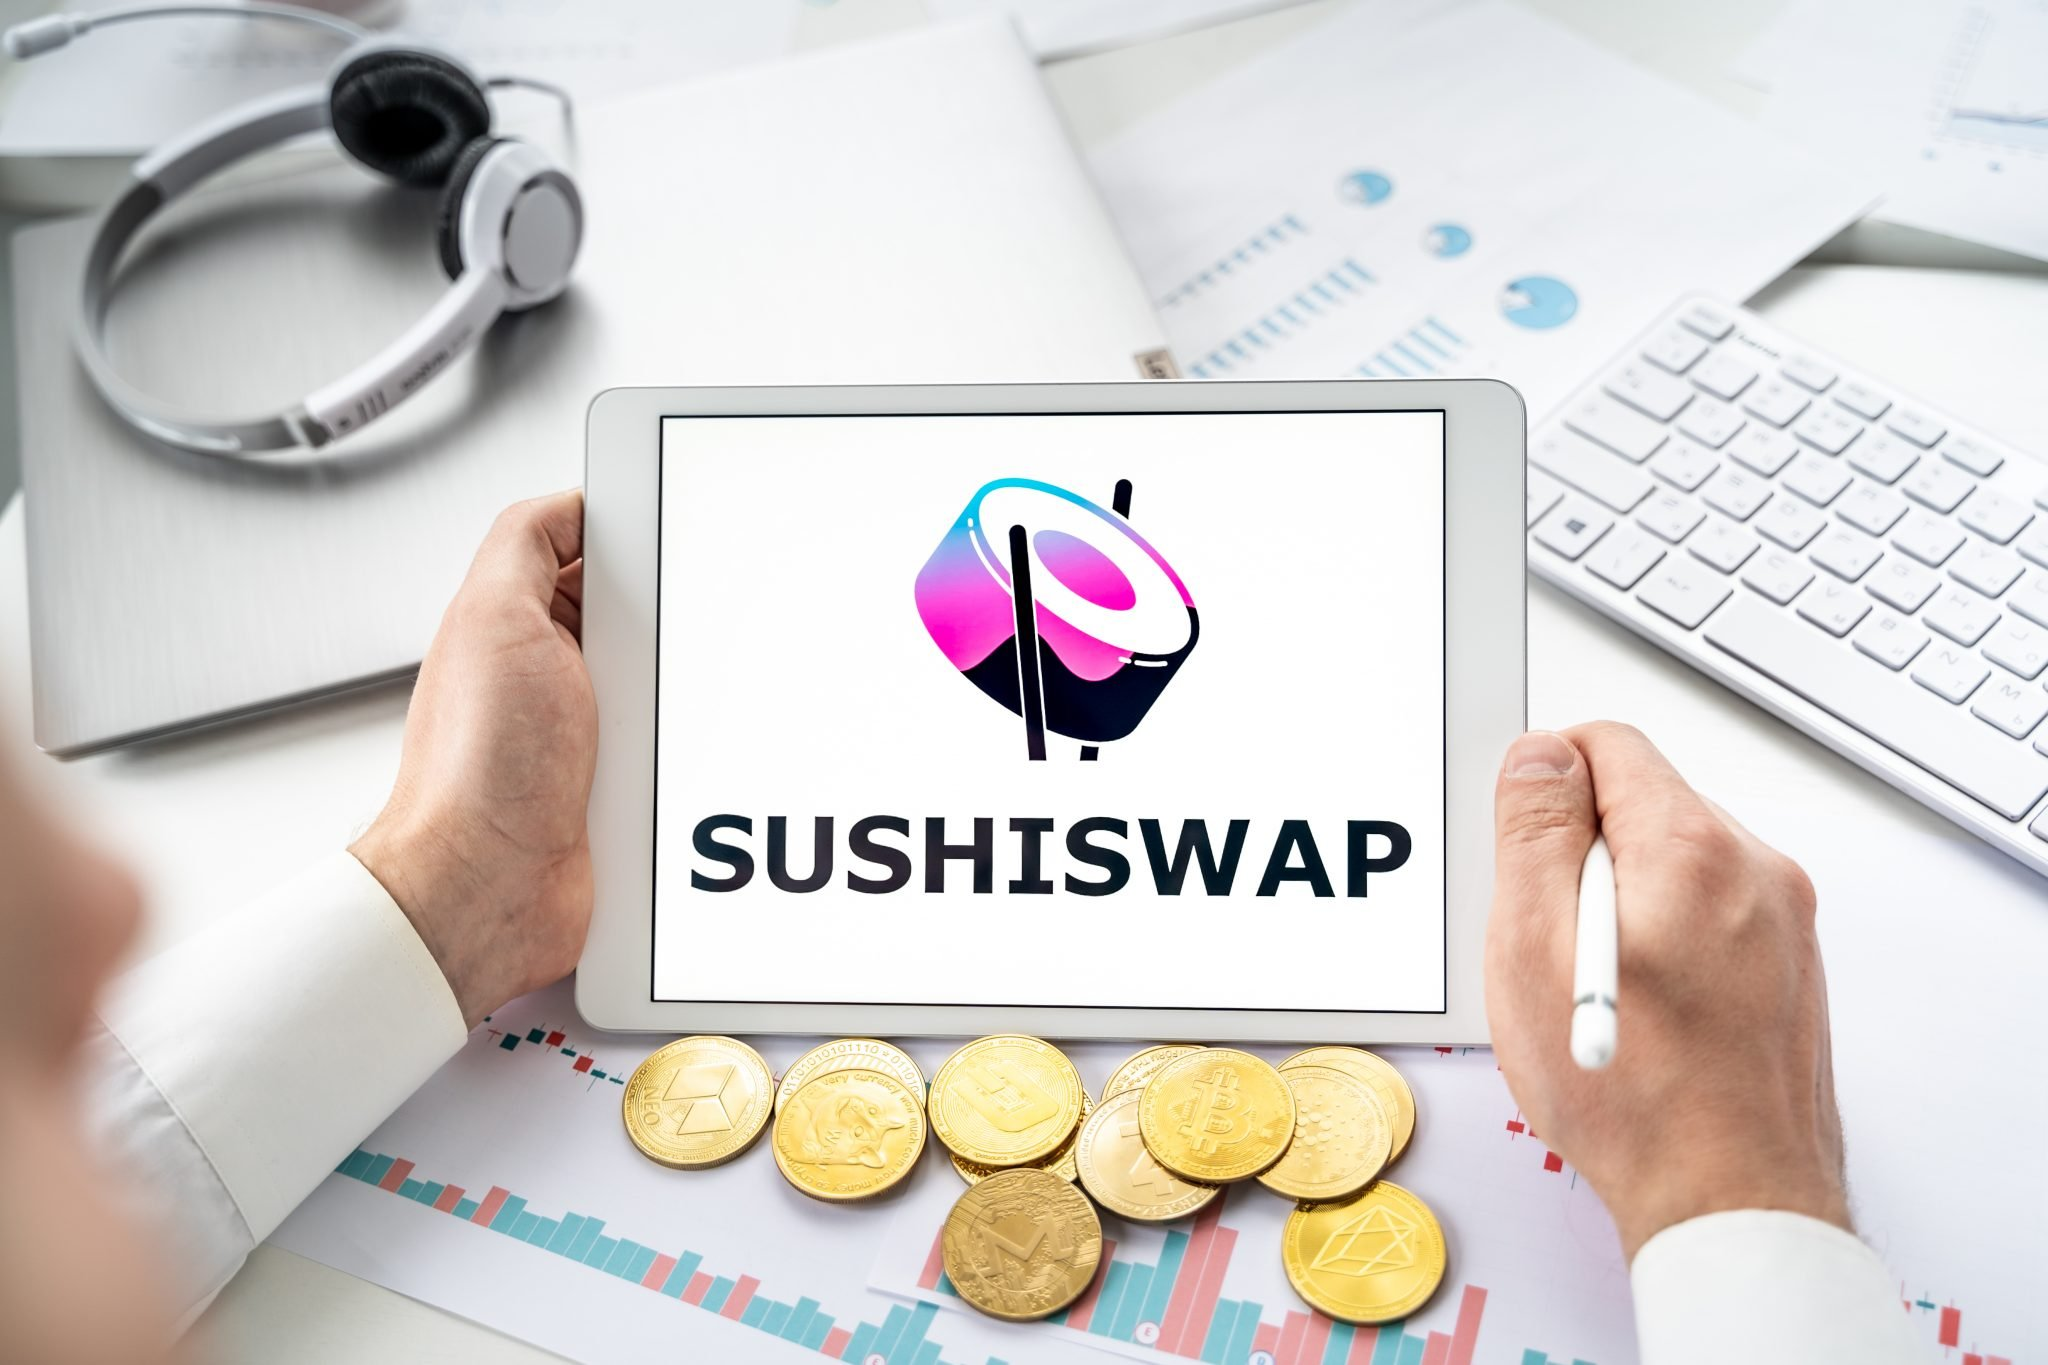 Russia Moscow 06.05.2021 Sushiswap logo.Cryptocurrency decentralized exchange DEX in tablet.Trading blockchain platform to swap,buy,sell crypto token,digital coin Bitcoin,Ethereum.Business,investing.